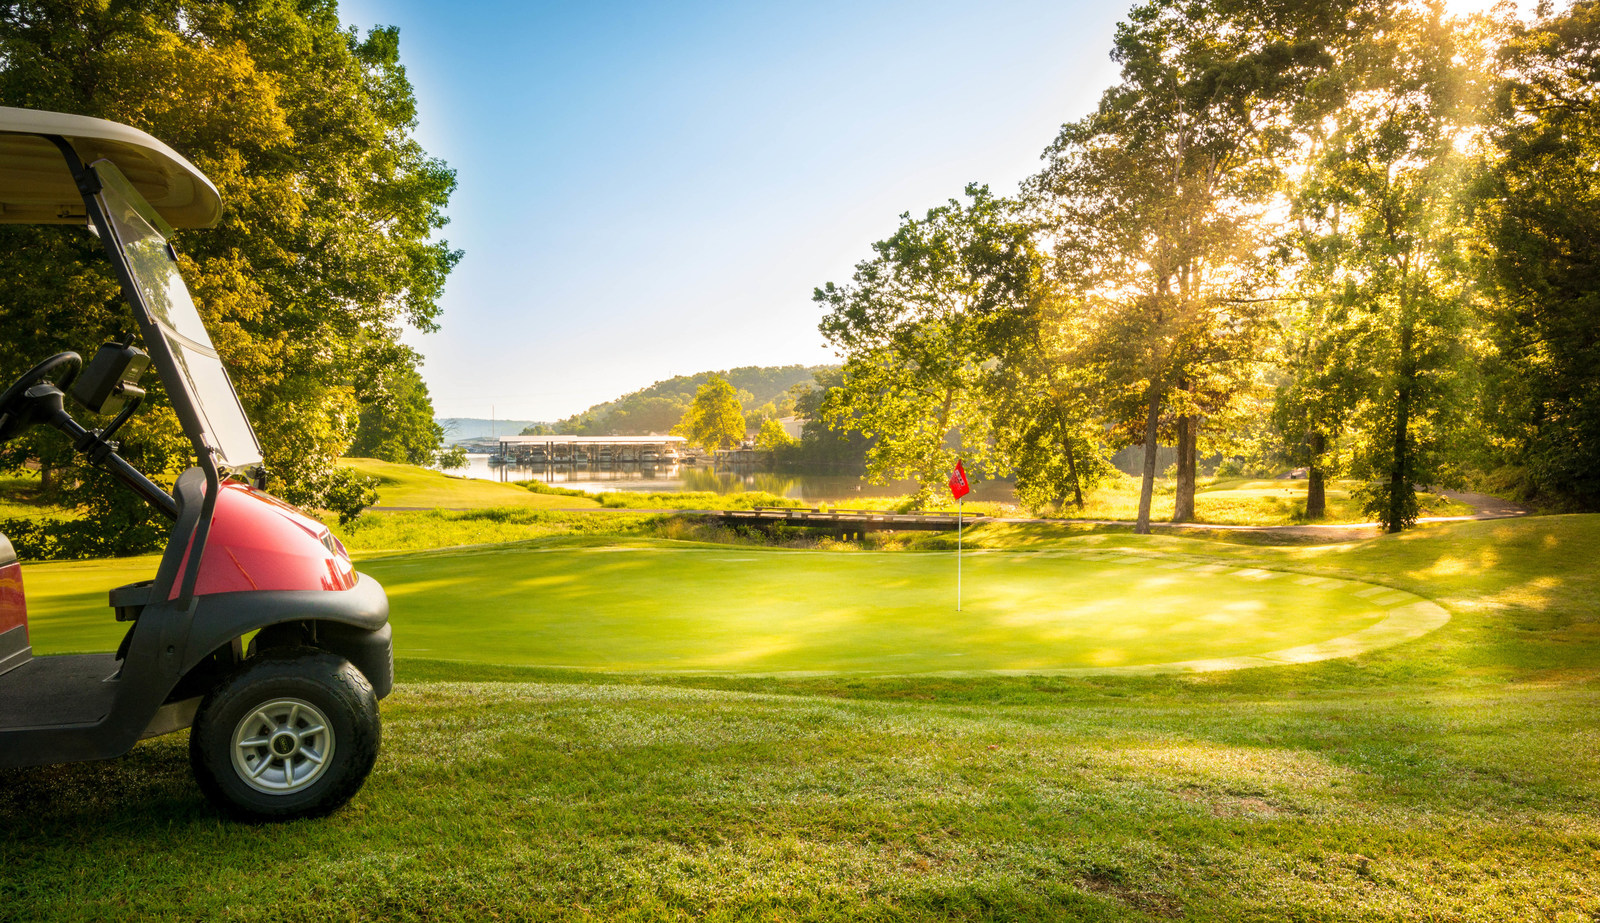 Unique Golf by the Hour at Lake of the Ozarks Resort Offers Greater Value for Players, More | PRNewswire